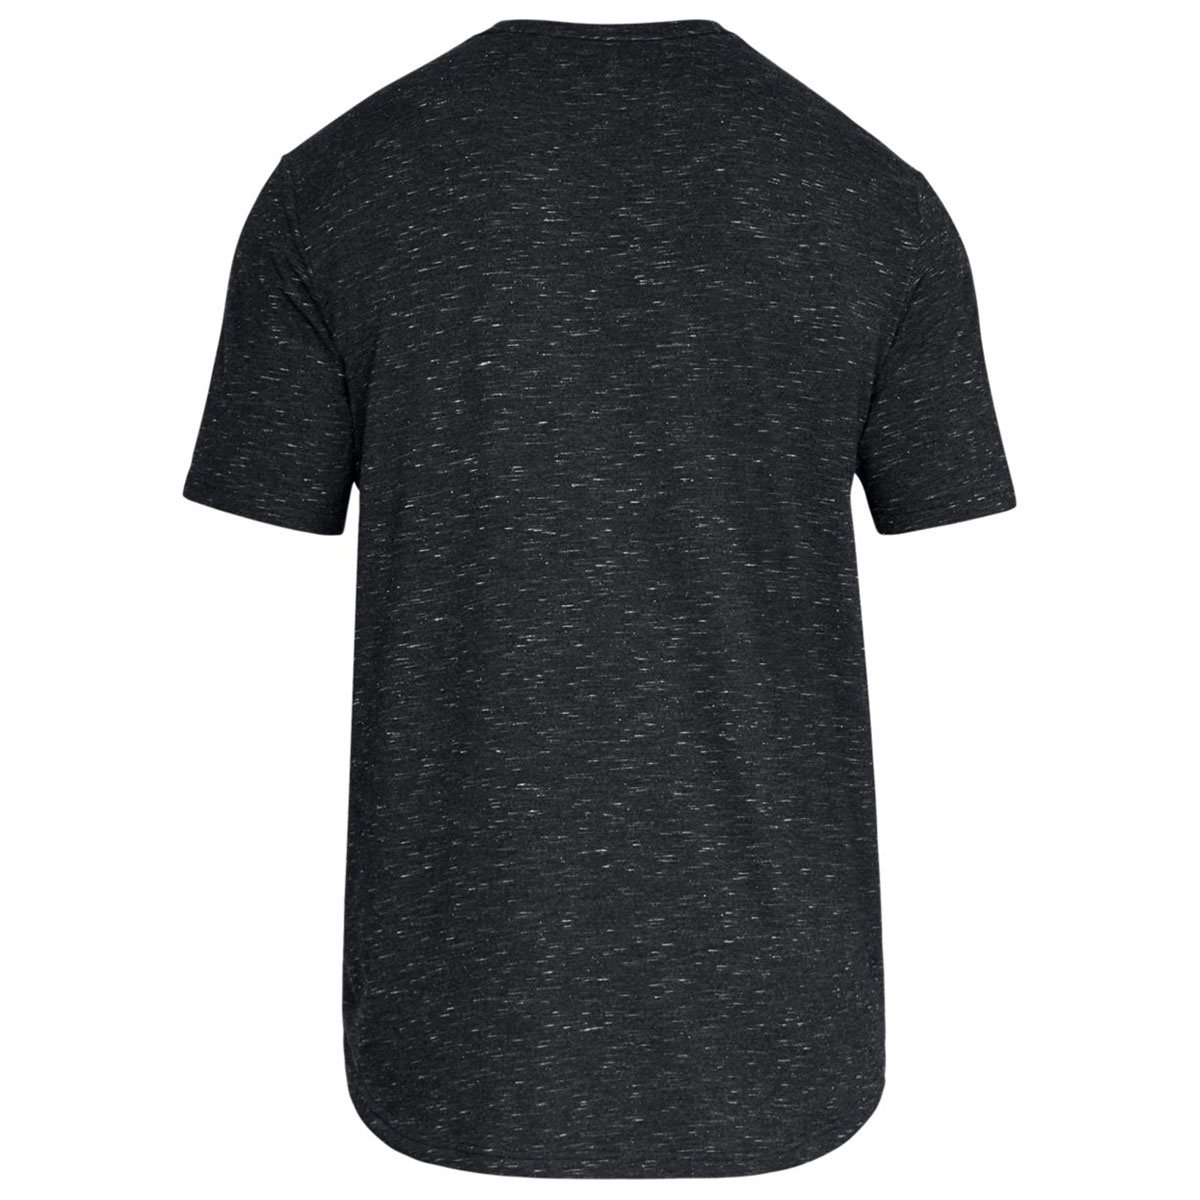 Under-Armour-Mens-UA-Sportstyle-SS-Moisture-Wicking-T-Shirt-39-OFF-RRP thumbnail 5